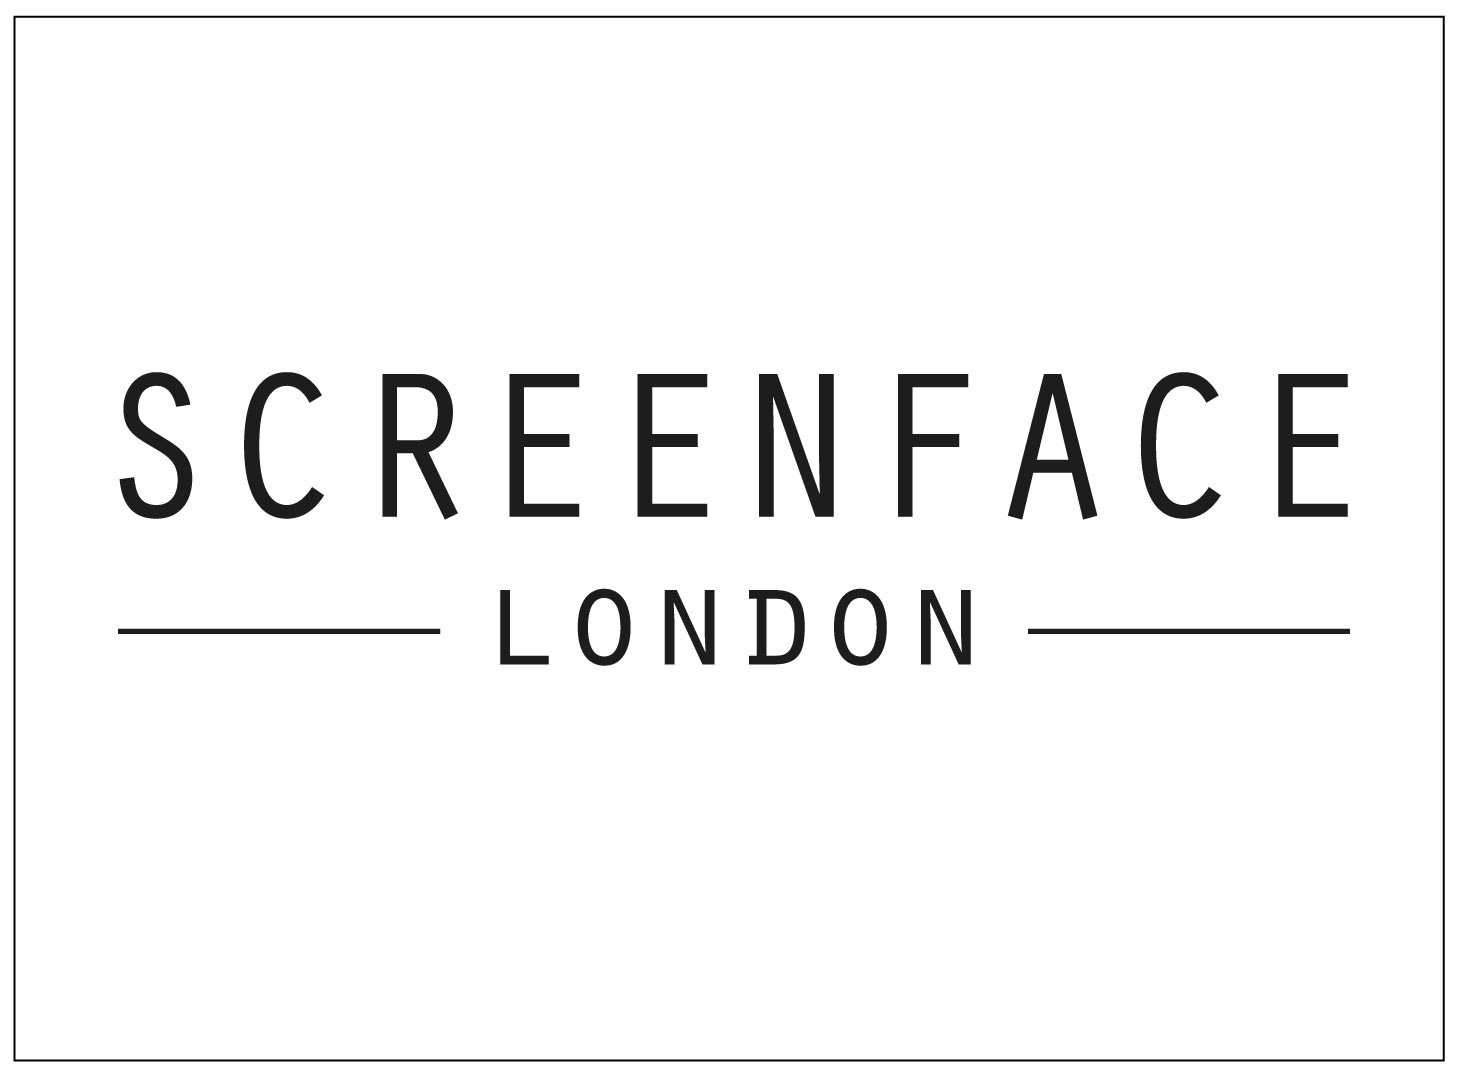 Screenface-London-2017-Exhibitor-01-1